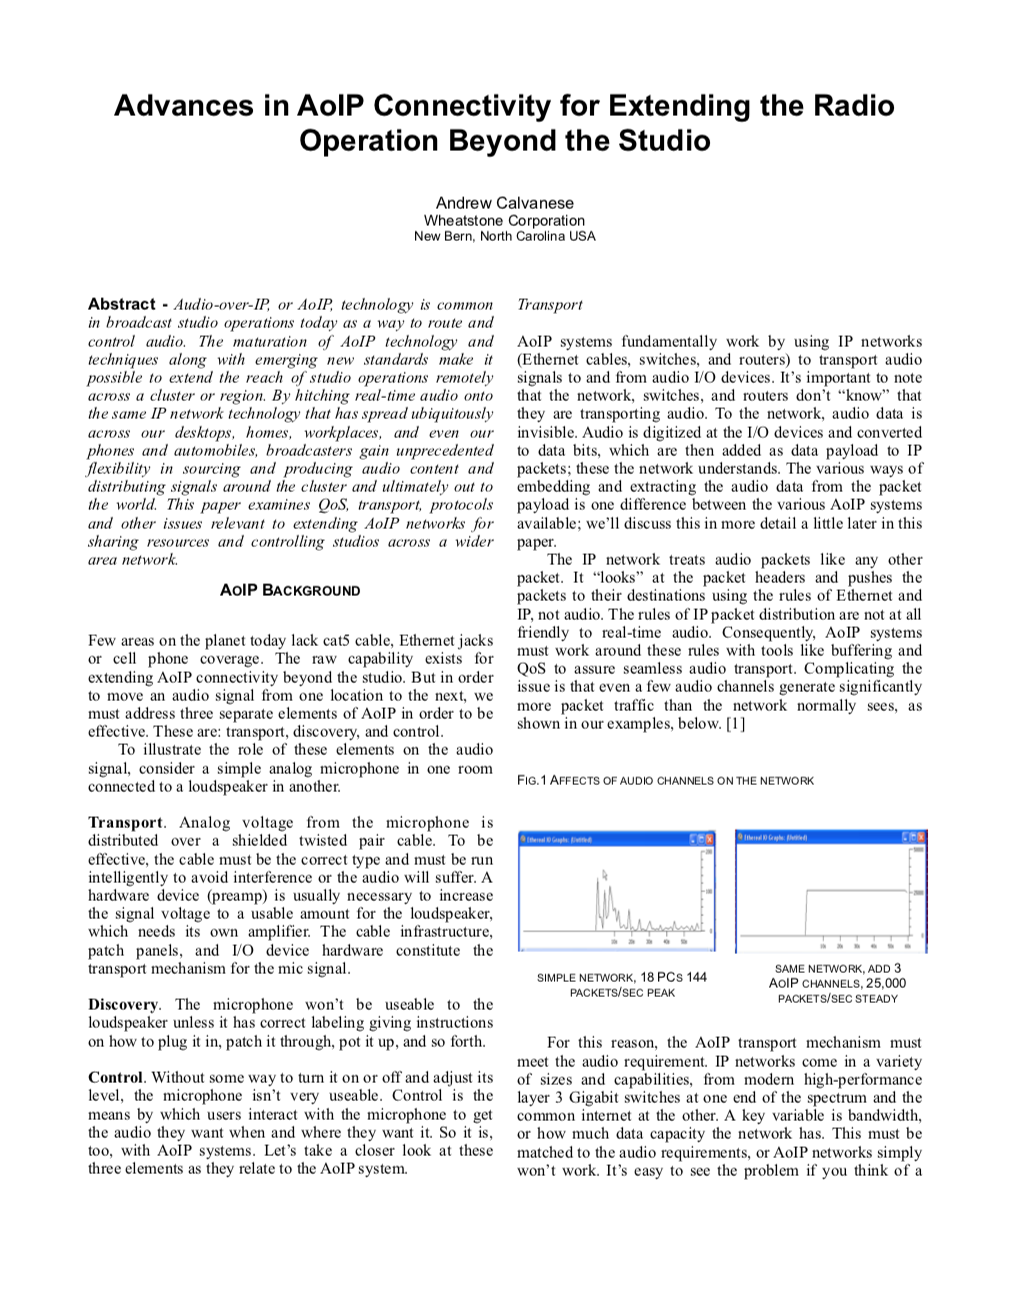 Advances in AoIP Connectivity for Extending the Radio Operation Beyond the Studio White Paper